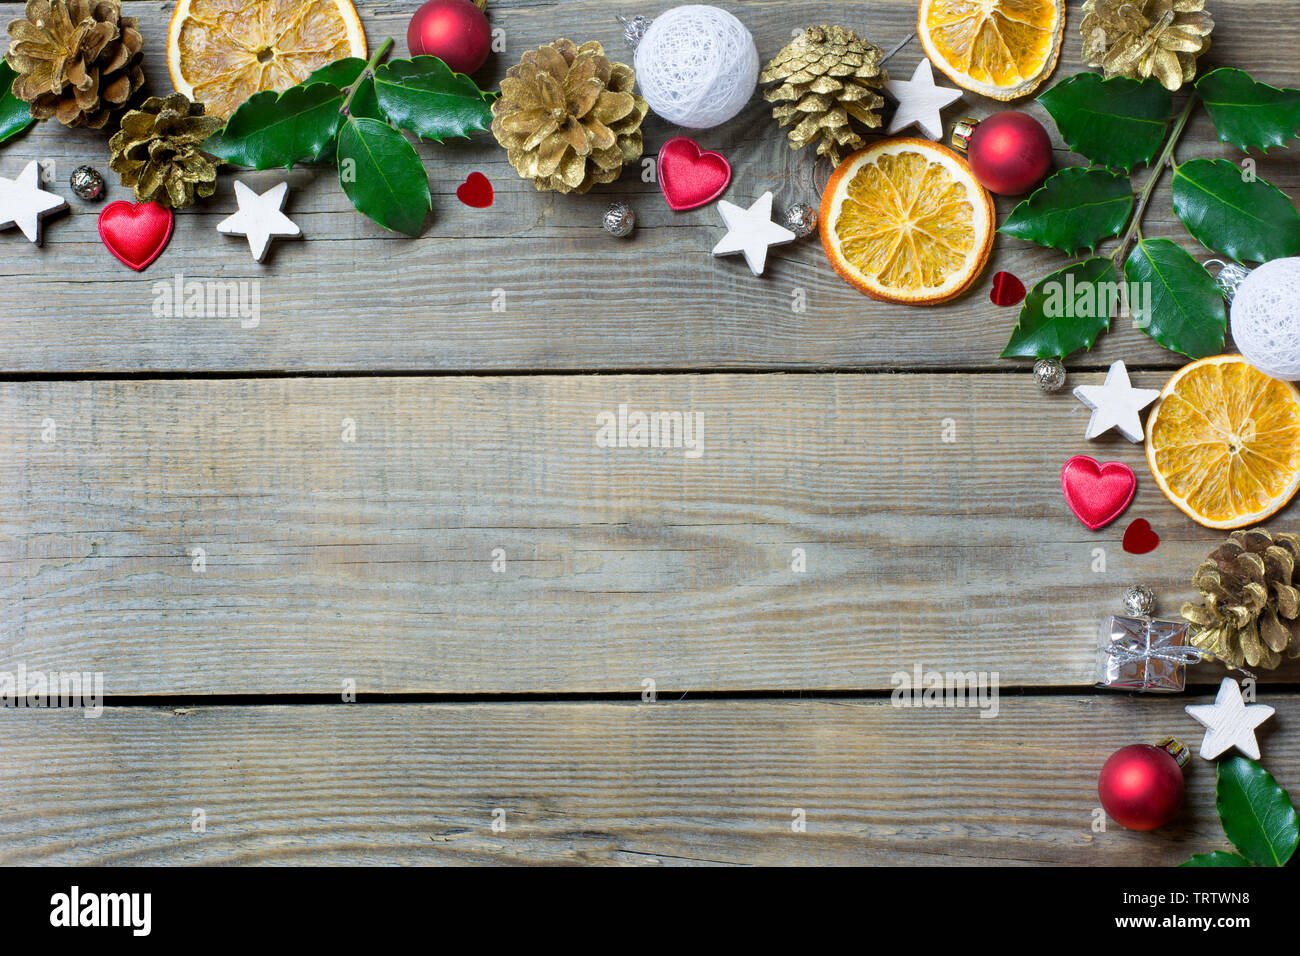 Christmas composition with orange slices, cones, holy, stars, small gift boxe, red and white baubles and hearts on wooden background - Stock Image